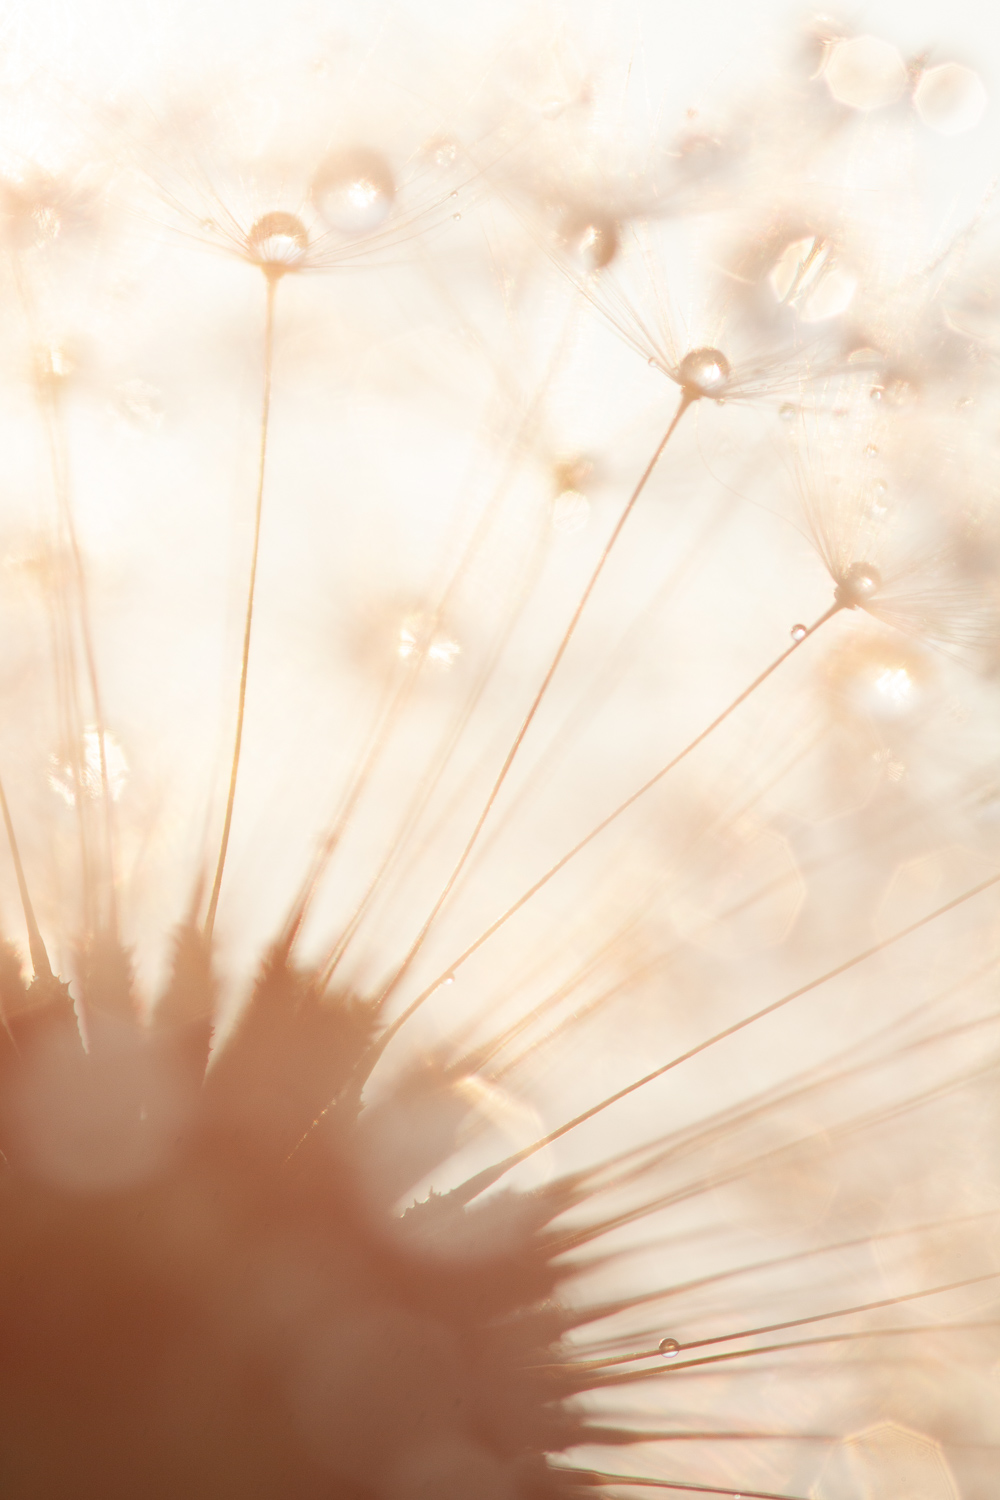 How to Use Backlight to Create Incredible Images - dandelion bright